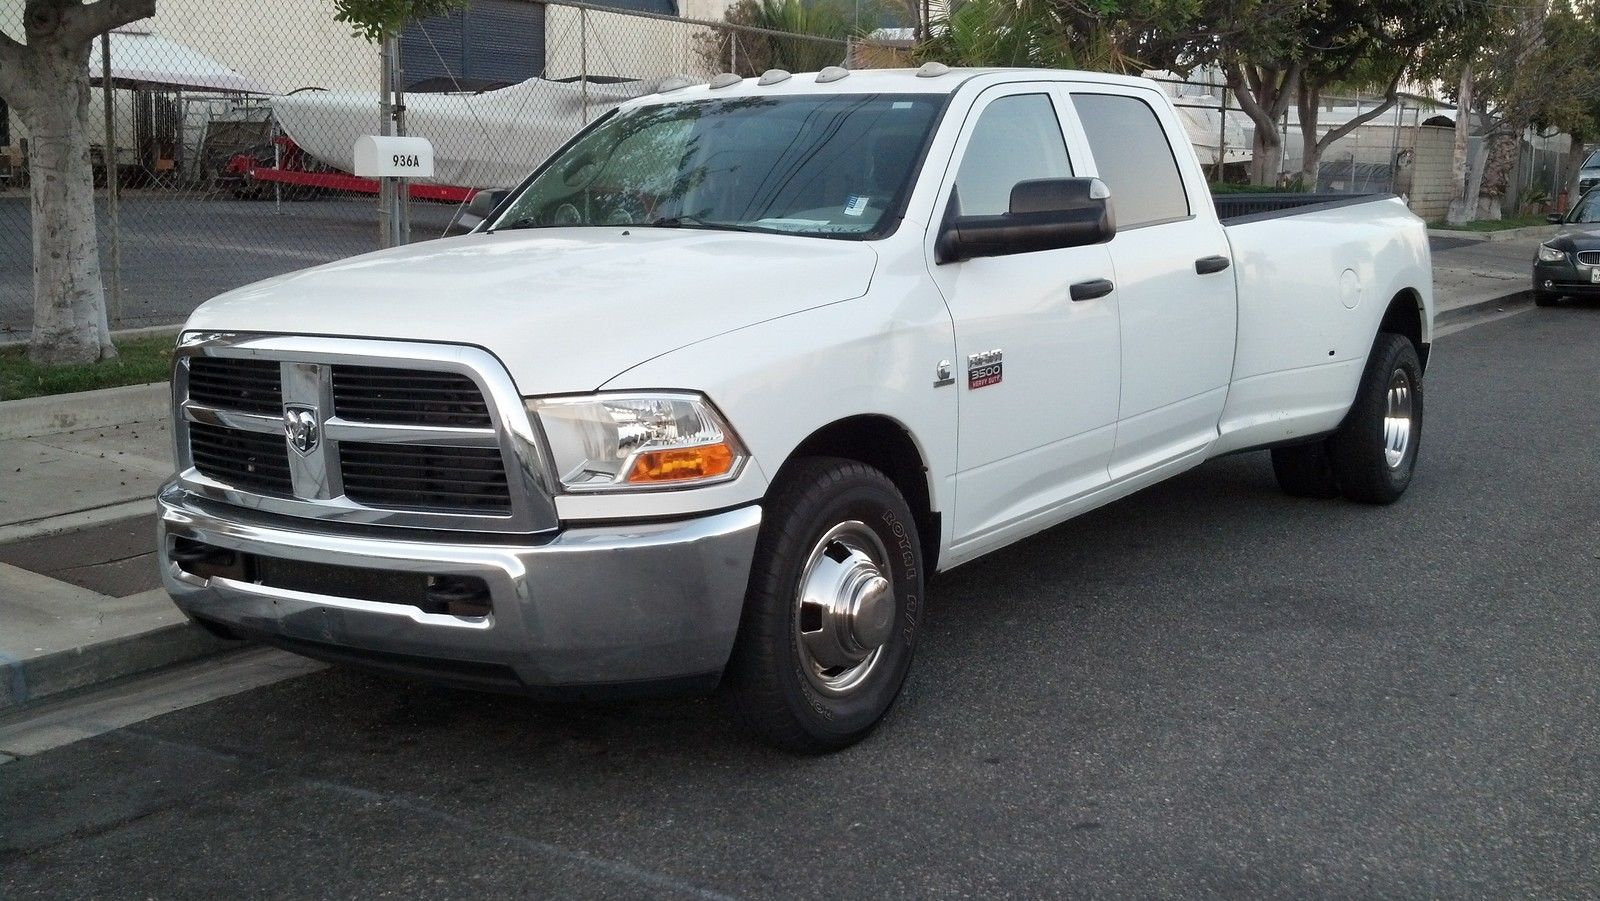 Ram Cummins Diesel Dually Crew Cab For Sale on 2016 Ram 1500 Laramie Crew Cab